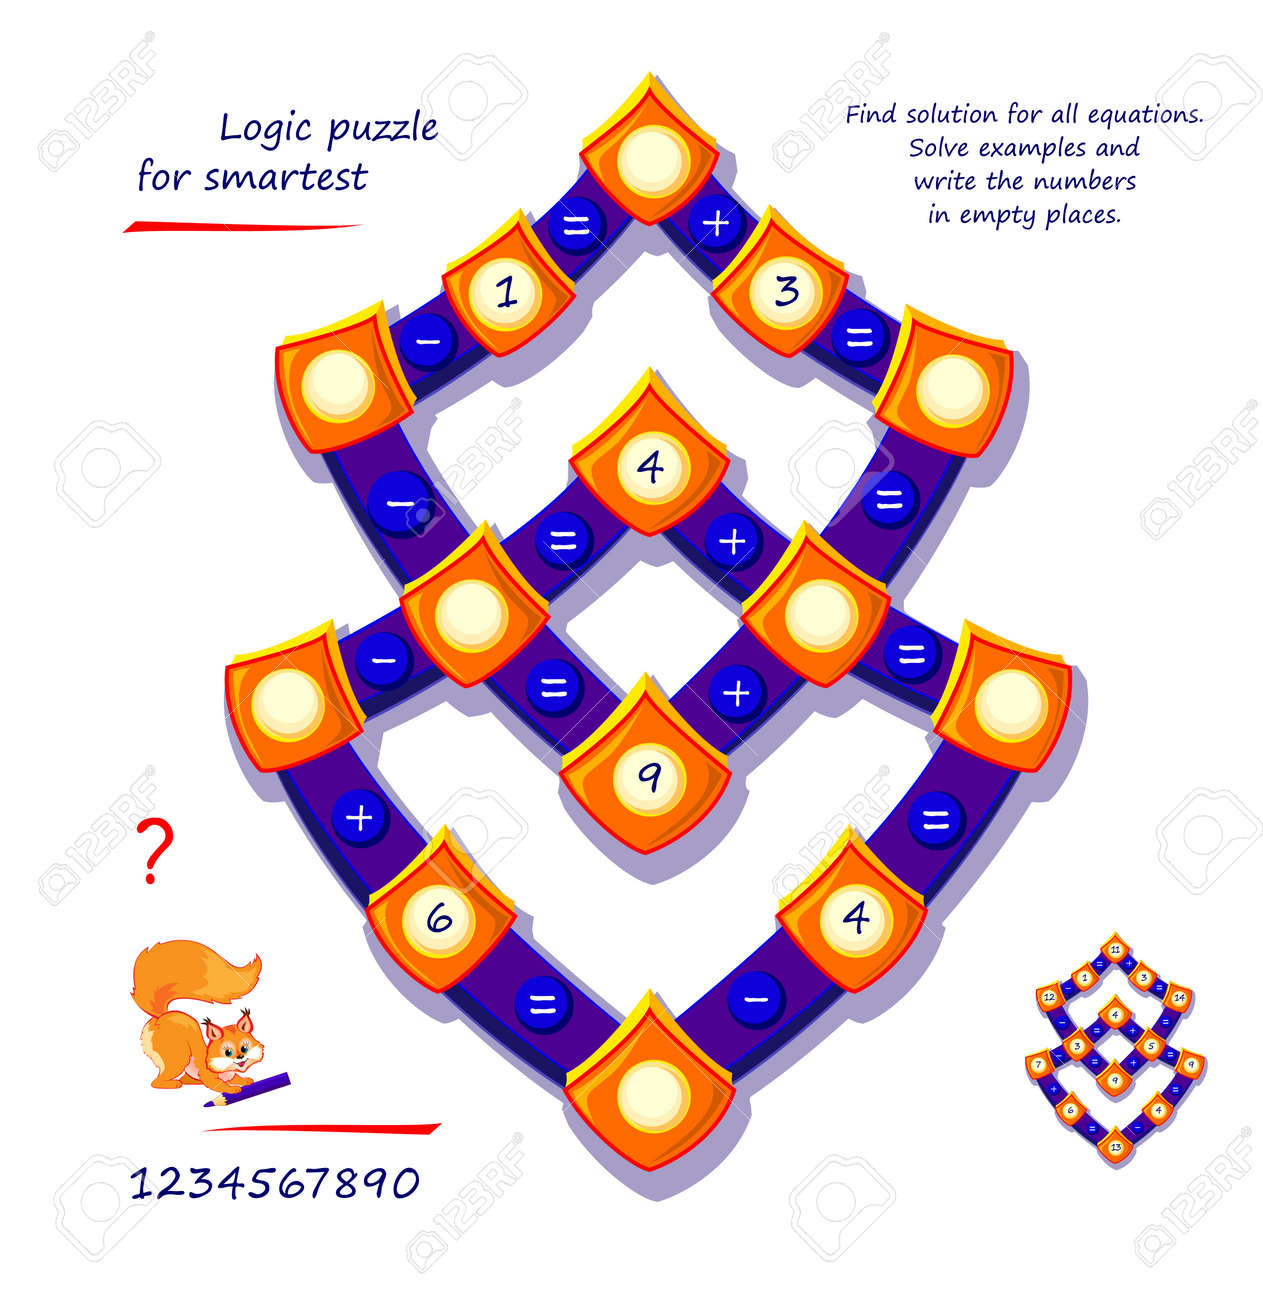 Mathematical logic puzzle game for smartest. Find solution for all equations. Solve examples and write numbers in empty places. Page for brain teaser book. Play online. Memory training for seniors. - 168449212